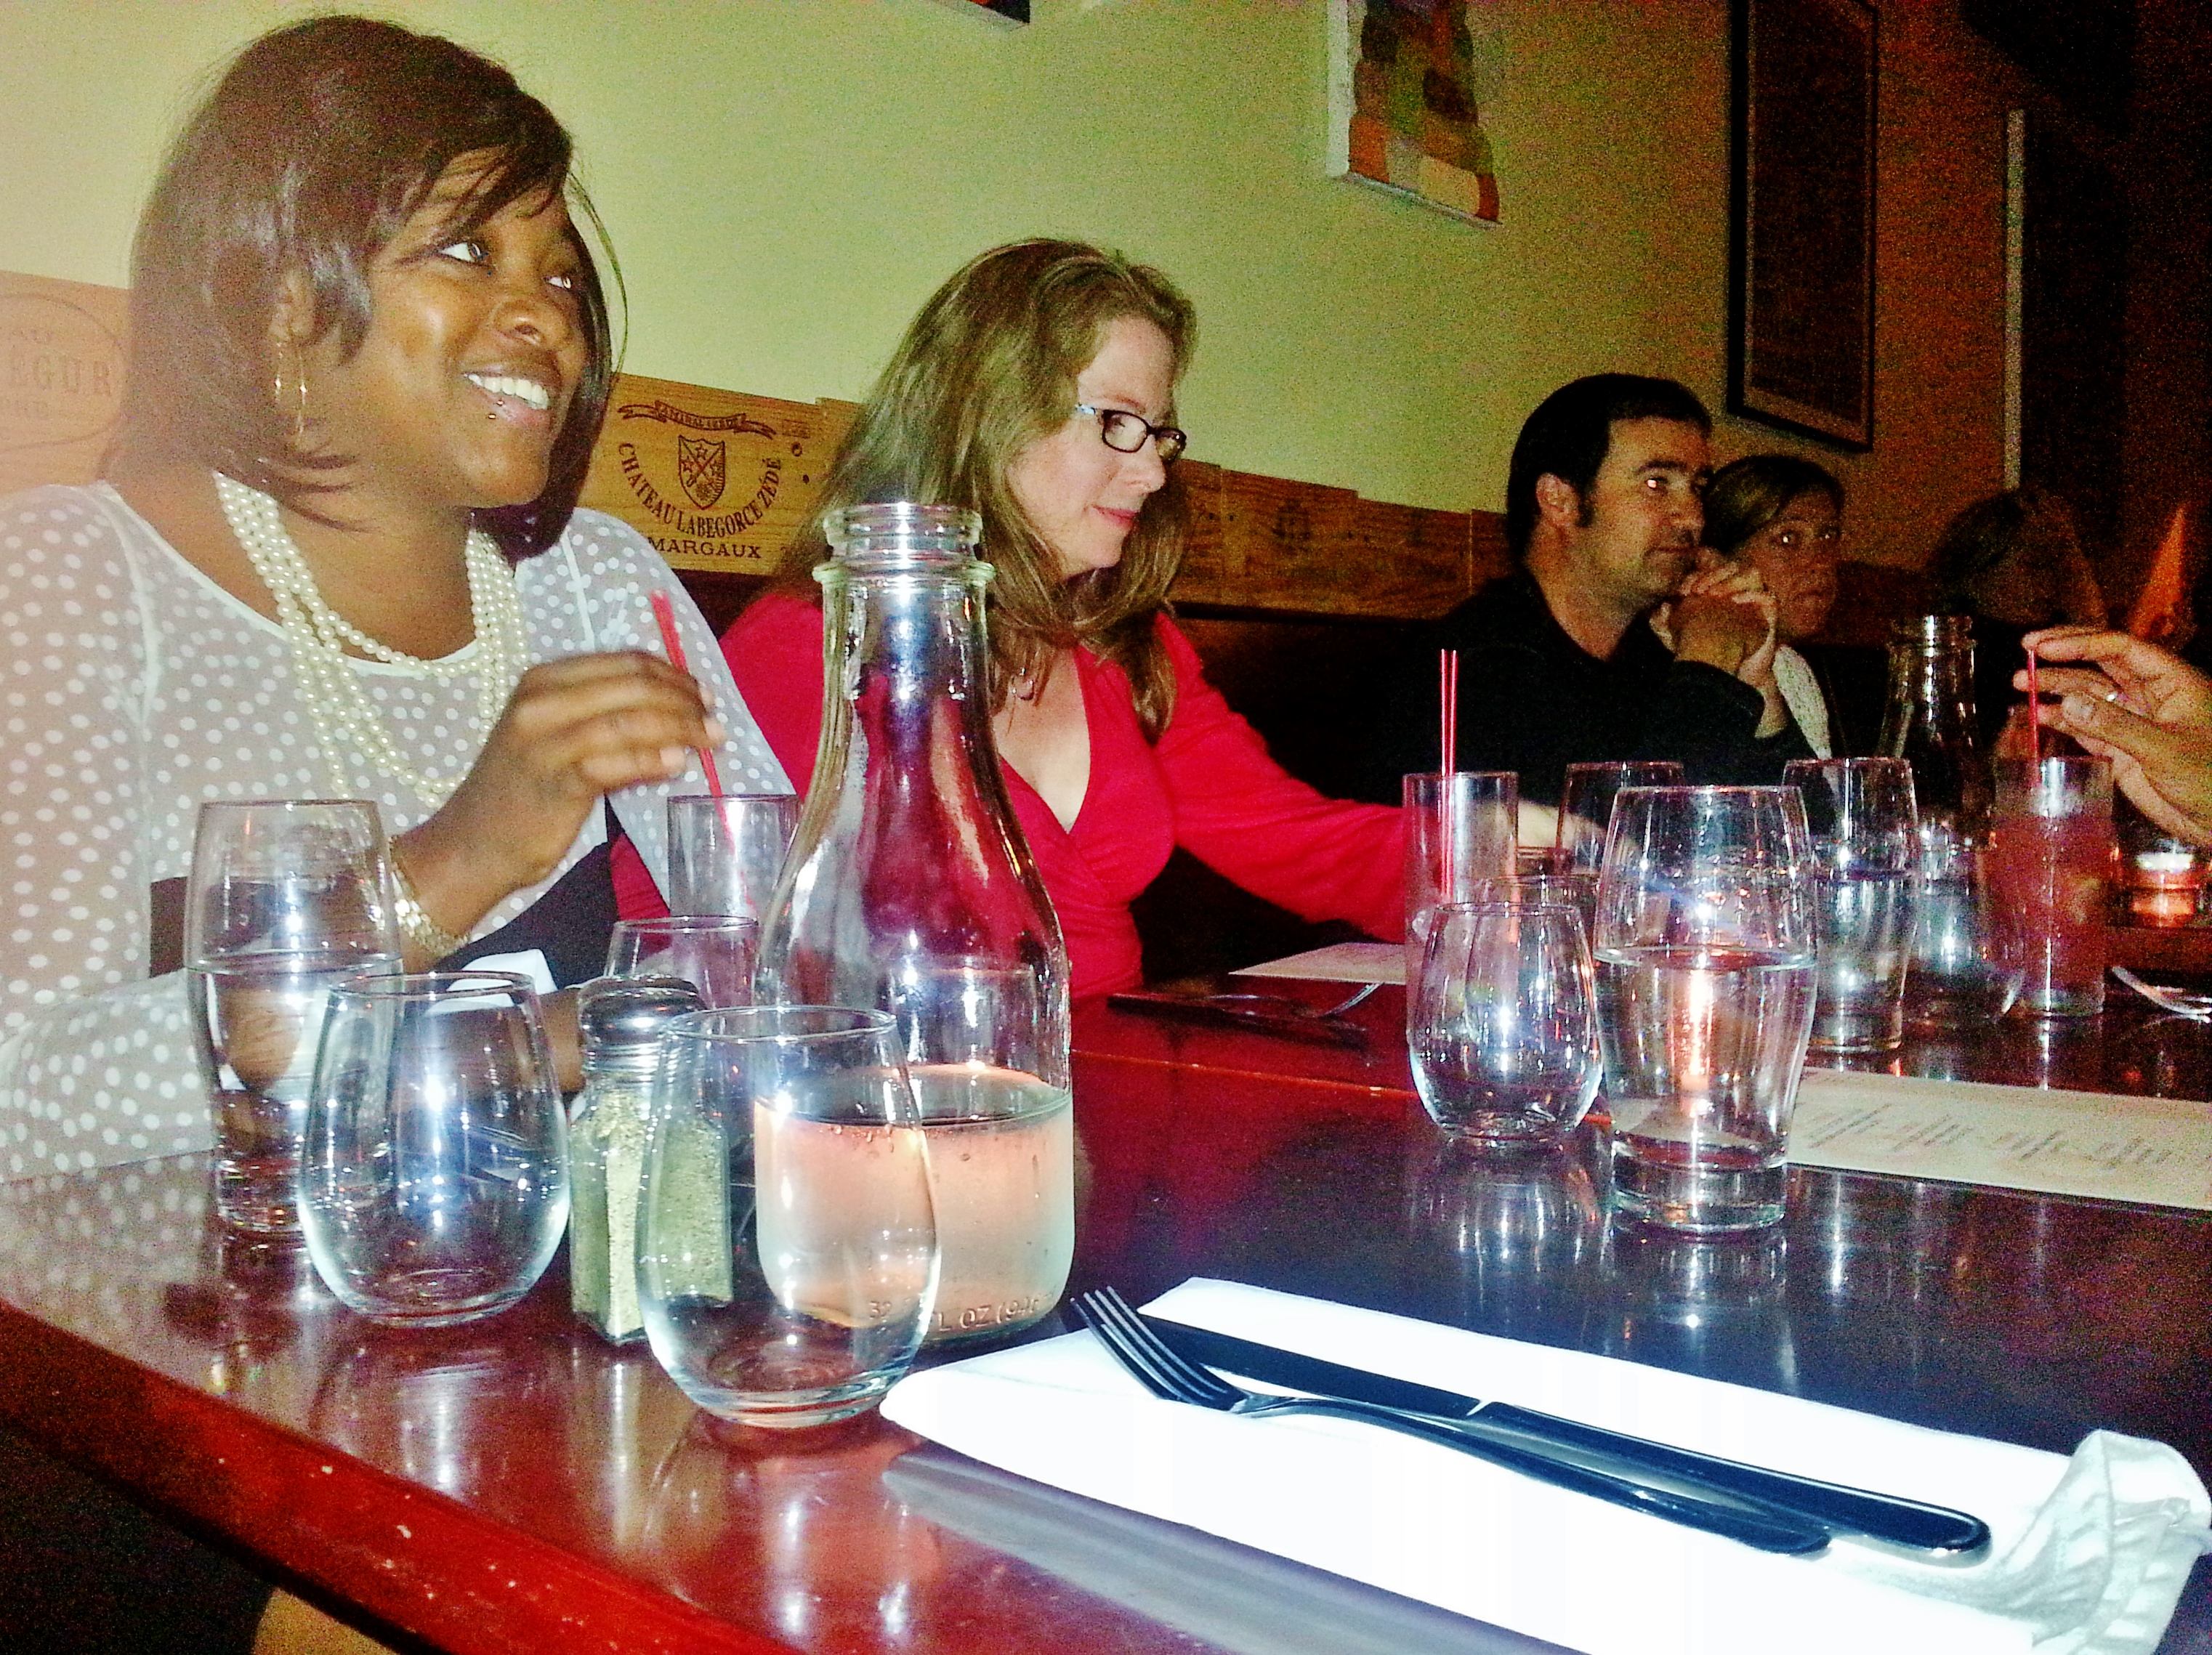 Customers enjoy the atmosphere while waiting for their food and wine.